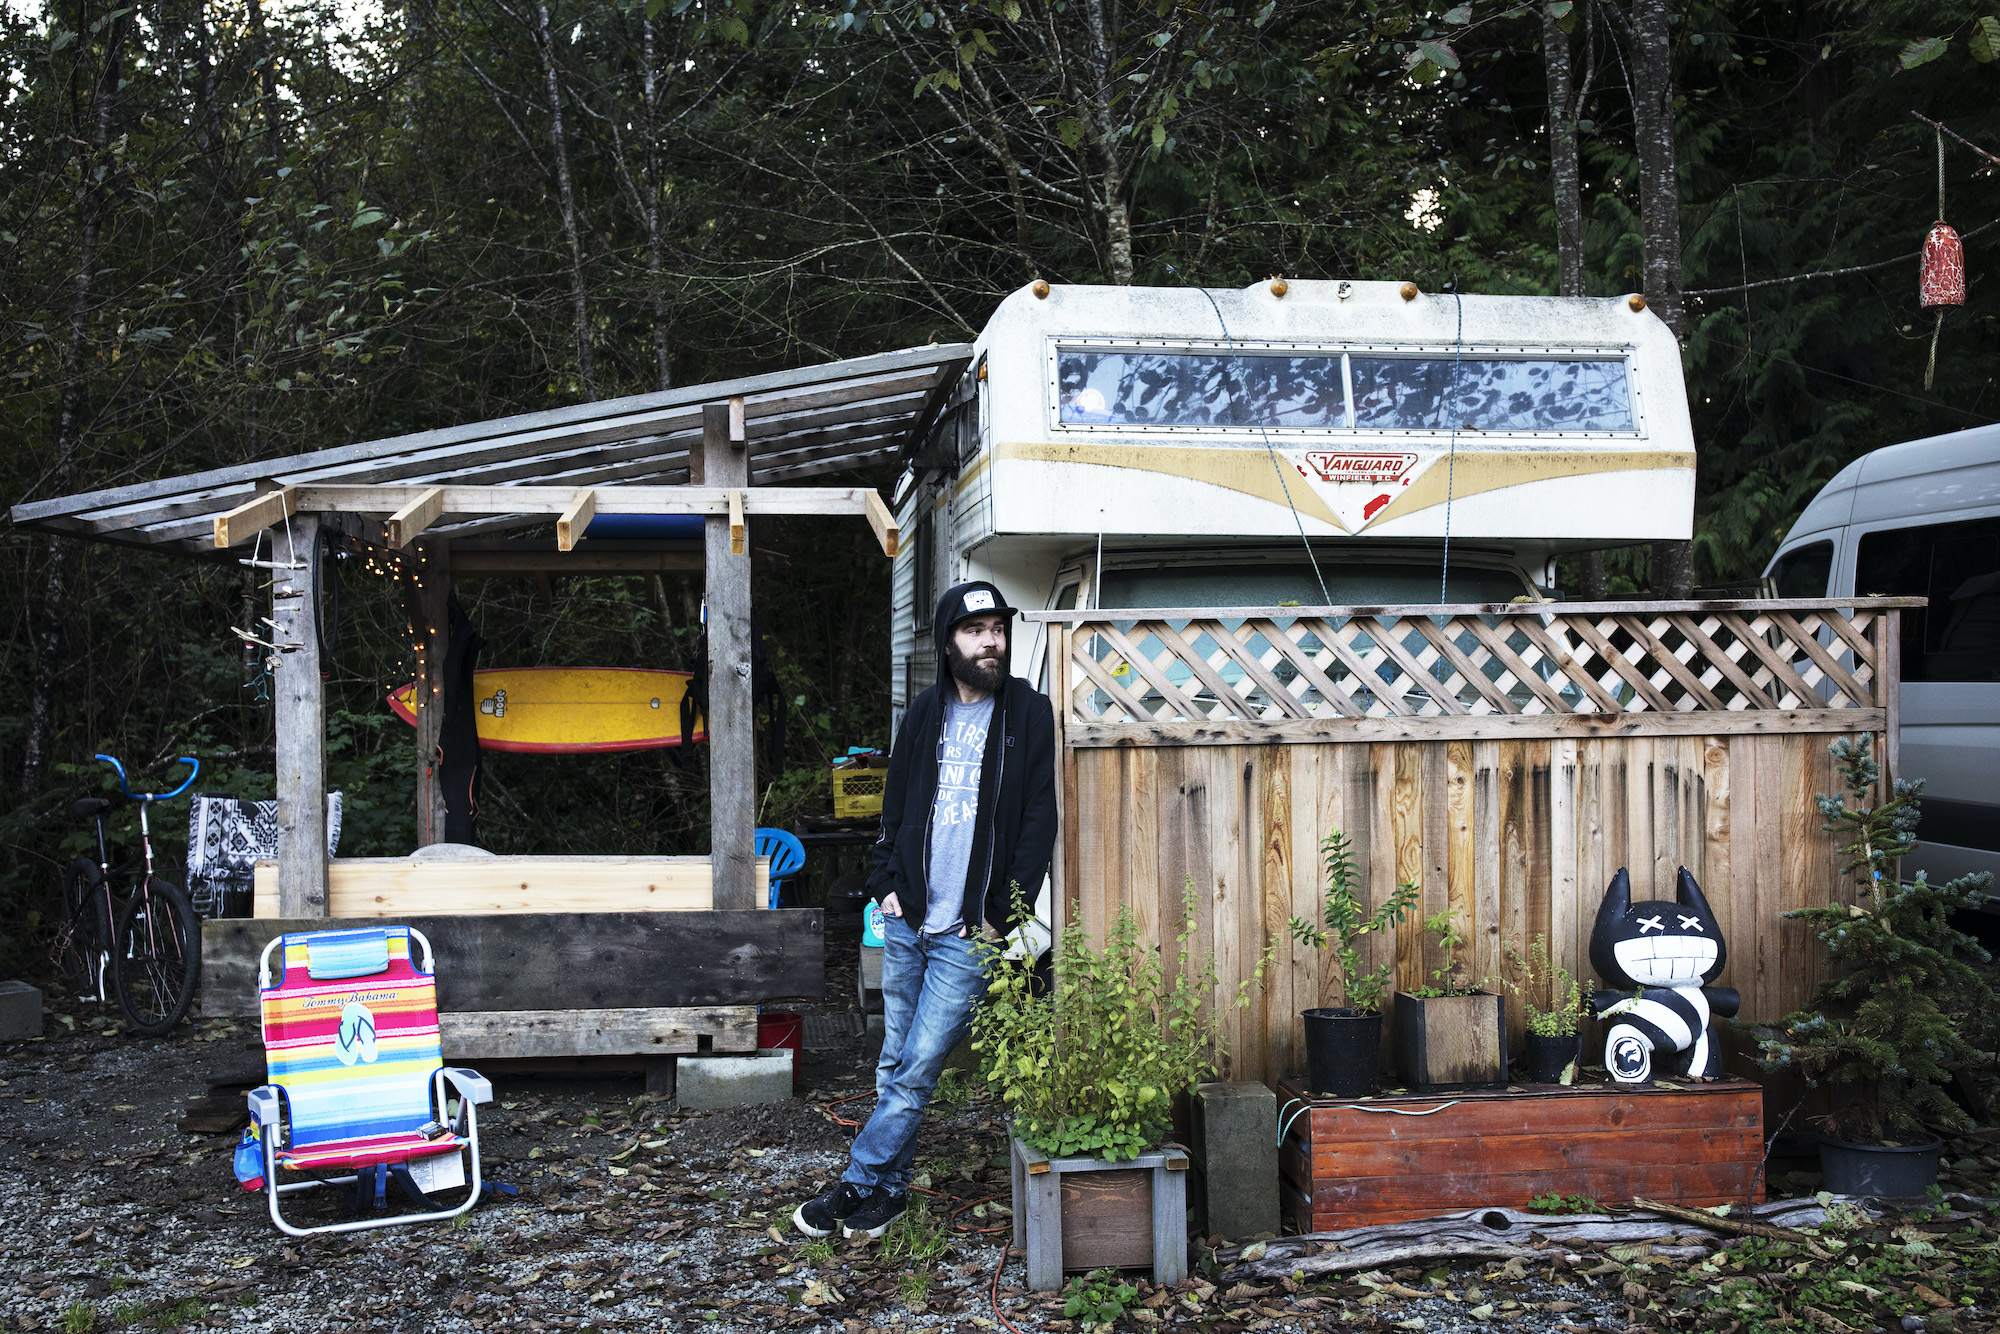 In Canada's 'Hippie Town,' COVID Has Led to an Influx of Vanlifers and 'CERB Surfers'